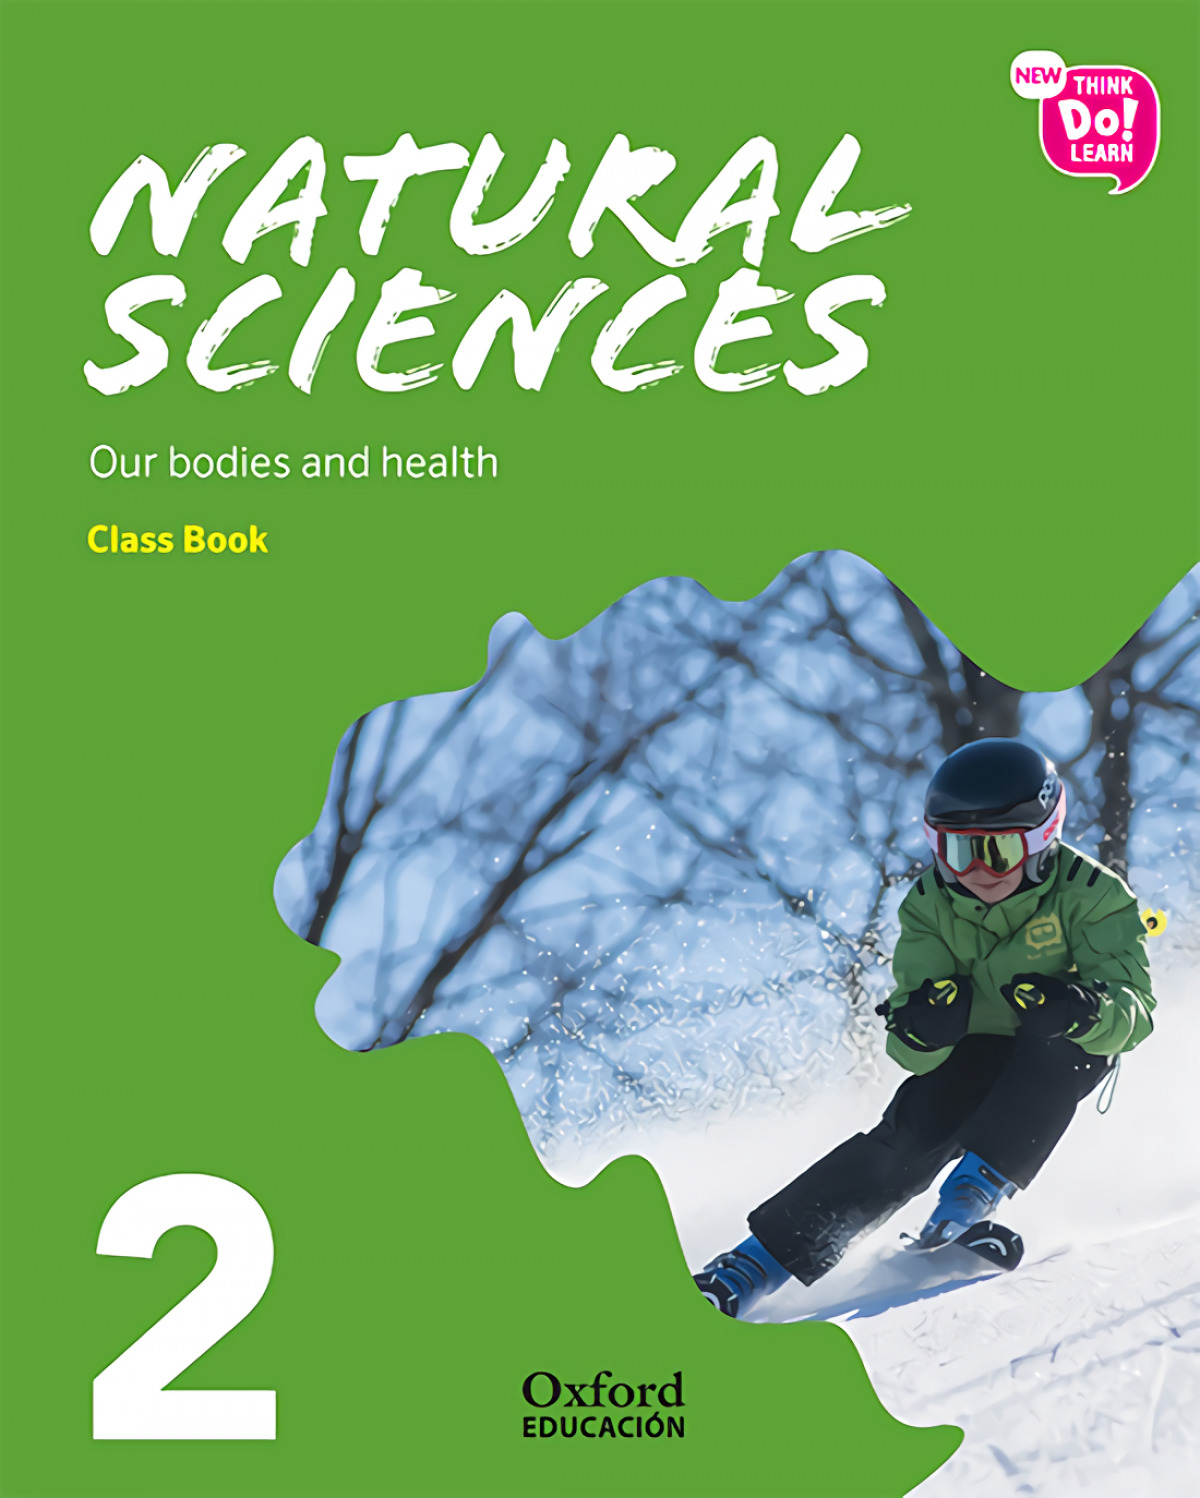 NATURAL SCIENCE 2 PRIMARY MODULE 1 COURSEBOOK PACK NEW THINK DO LEARN